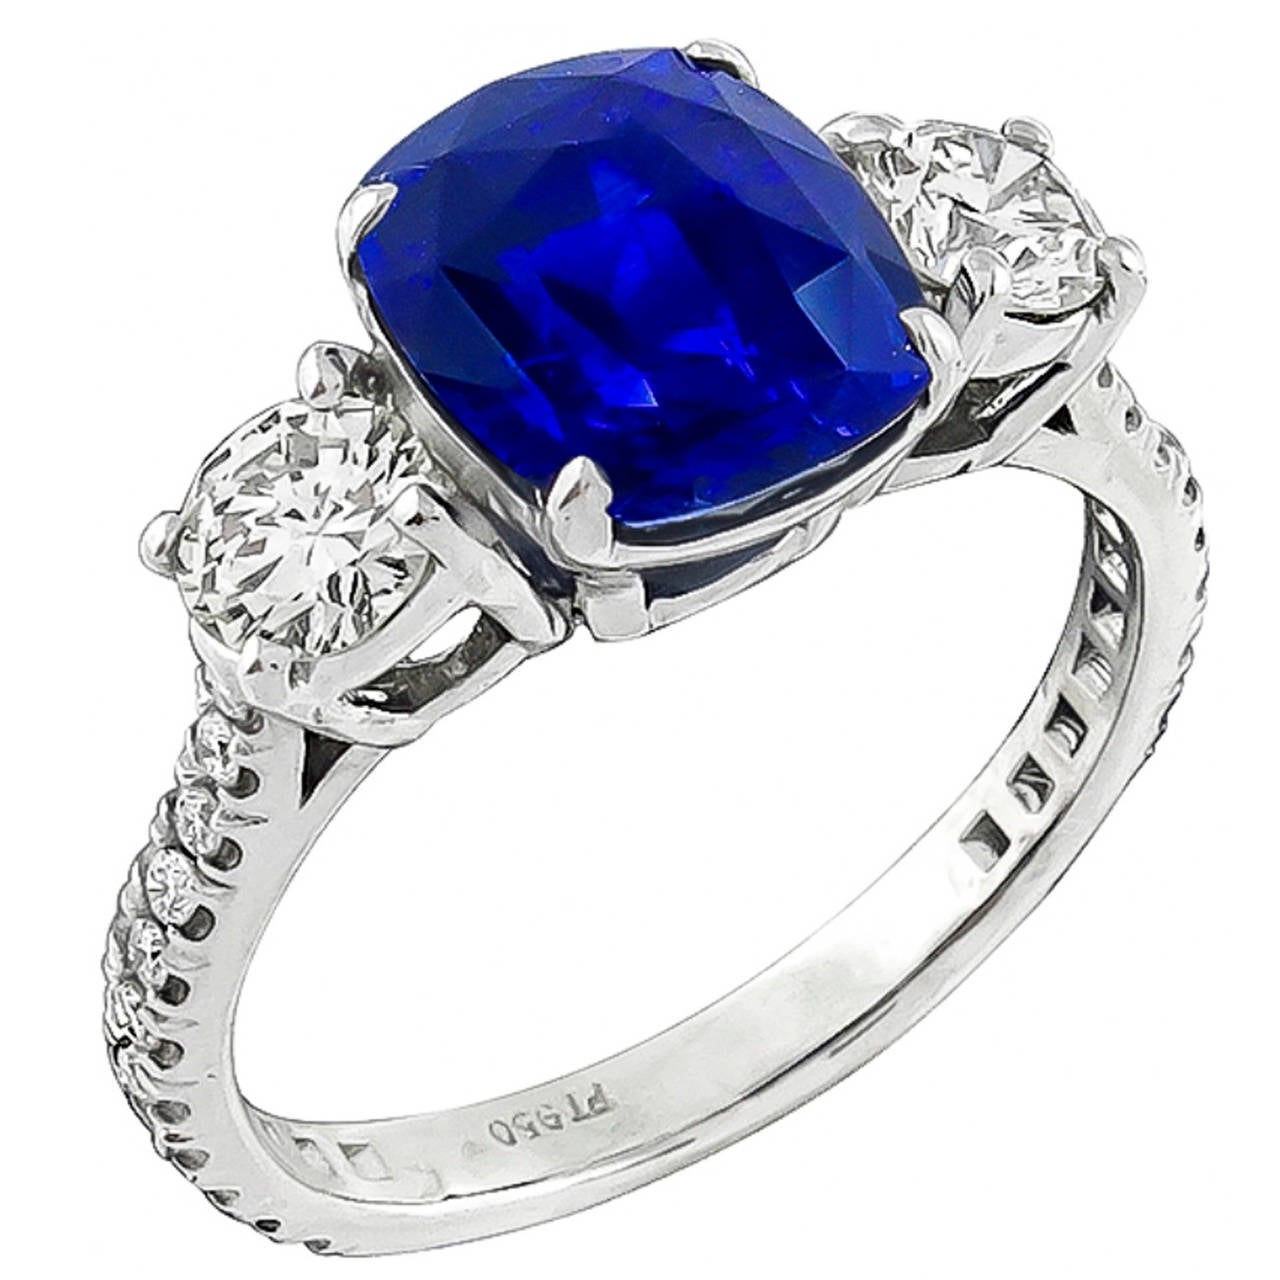 4.04 Carat Natural Sapphire Diamond Platinum Engagement Ring